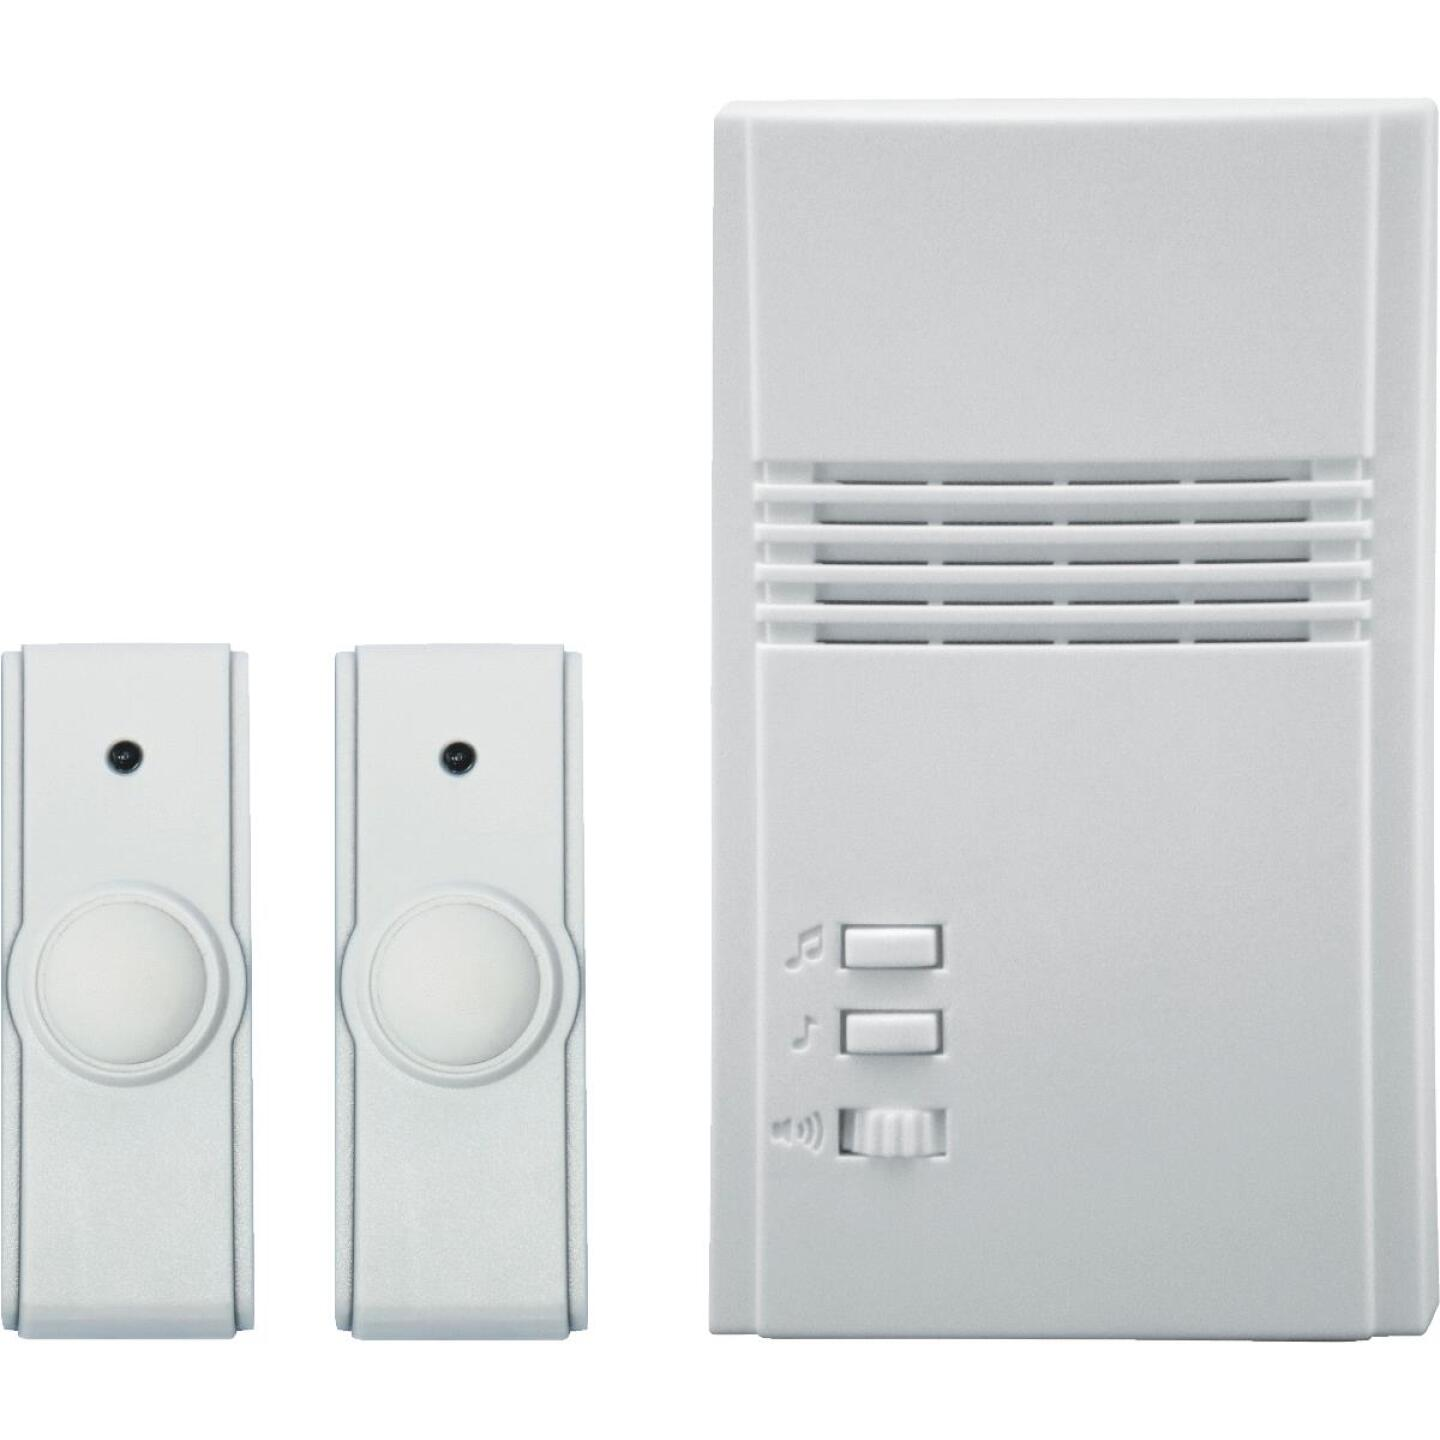 IQ America White Plug-In Wireless Off-White Door Chime with 2 Push Buttons Image 1